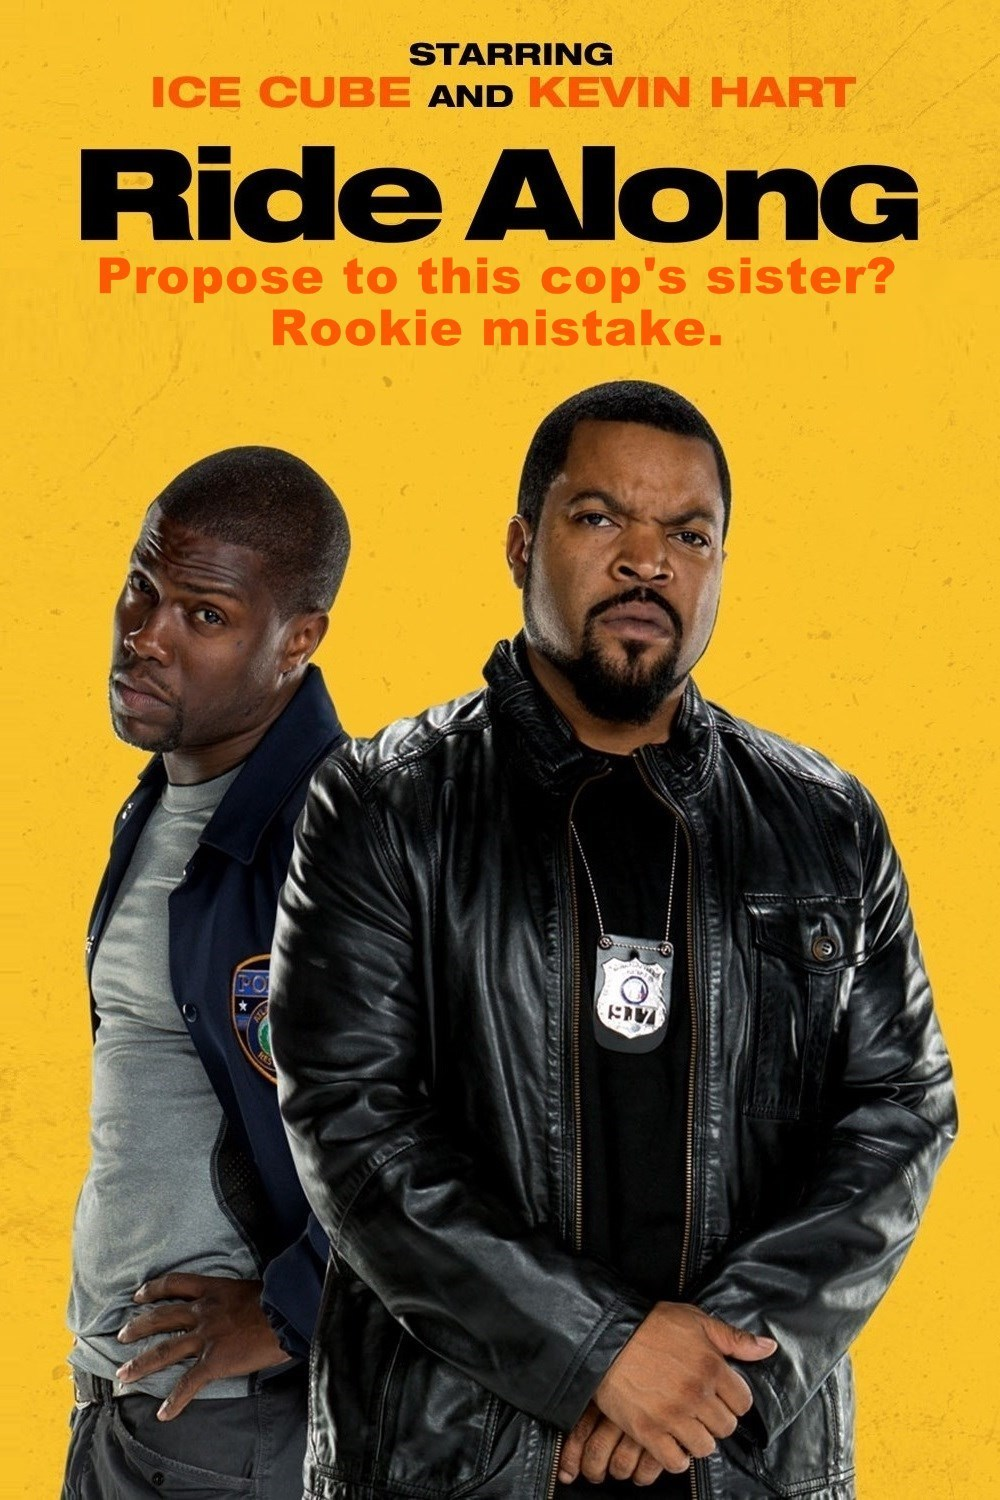 http://www.newdvdreleasedates.com/images/posters/full/ride-along-2014-03.jpg